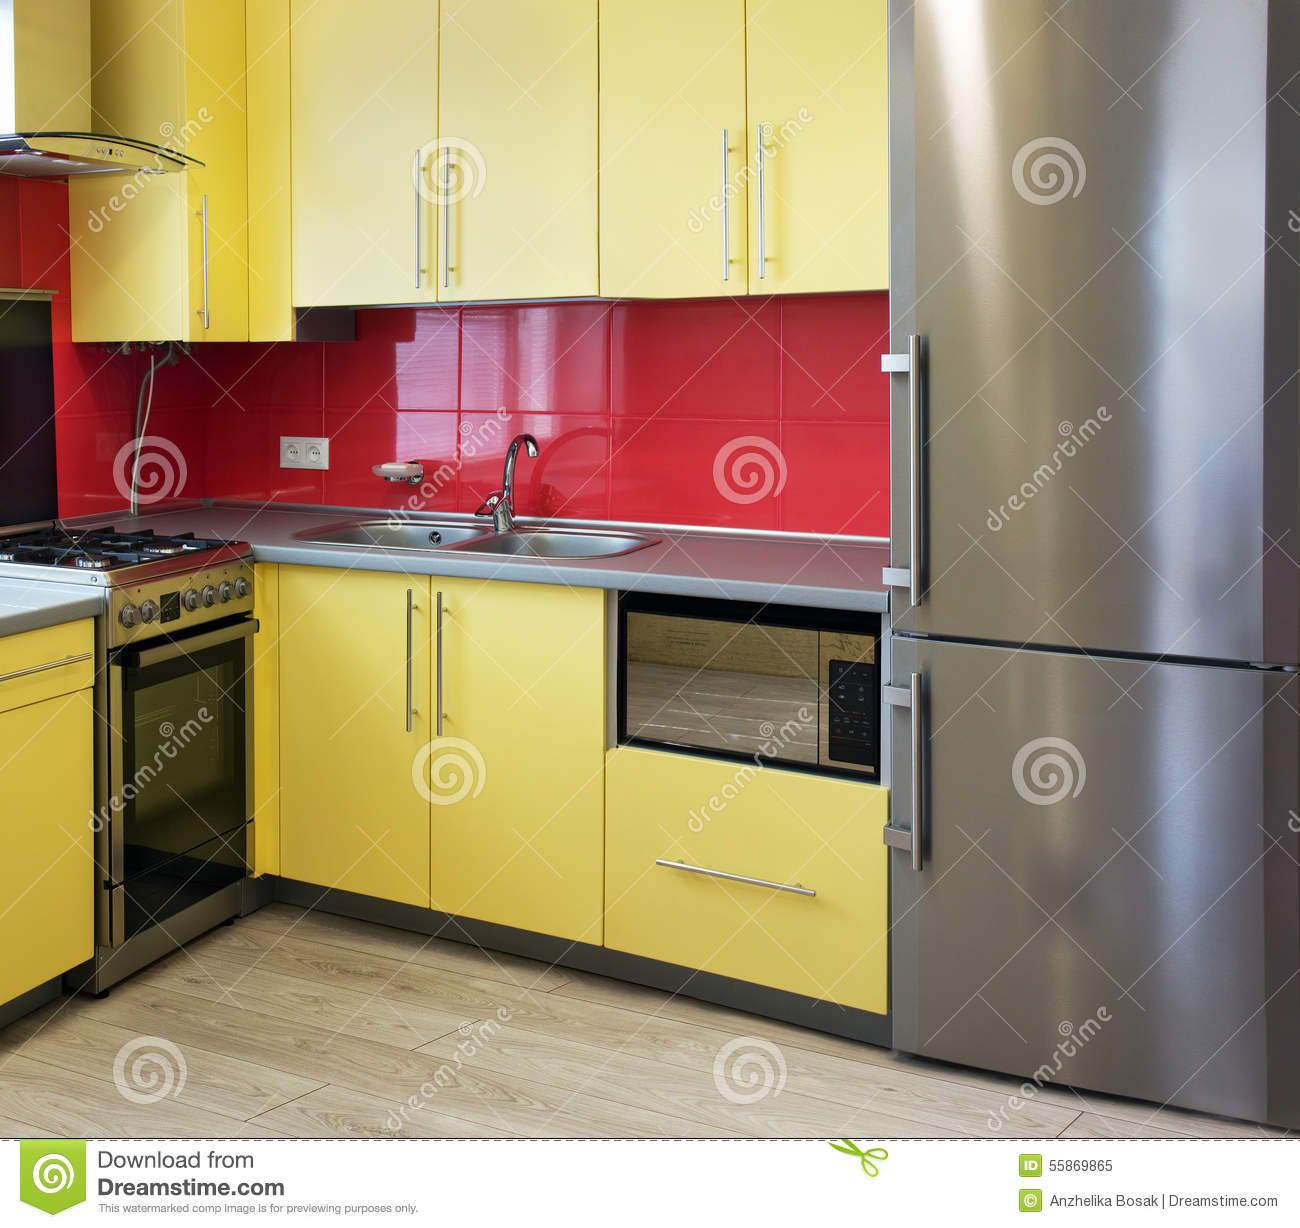 Yellow kitchen stock image. Image of interior, faucet - 55869865